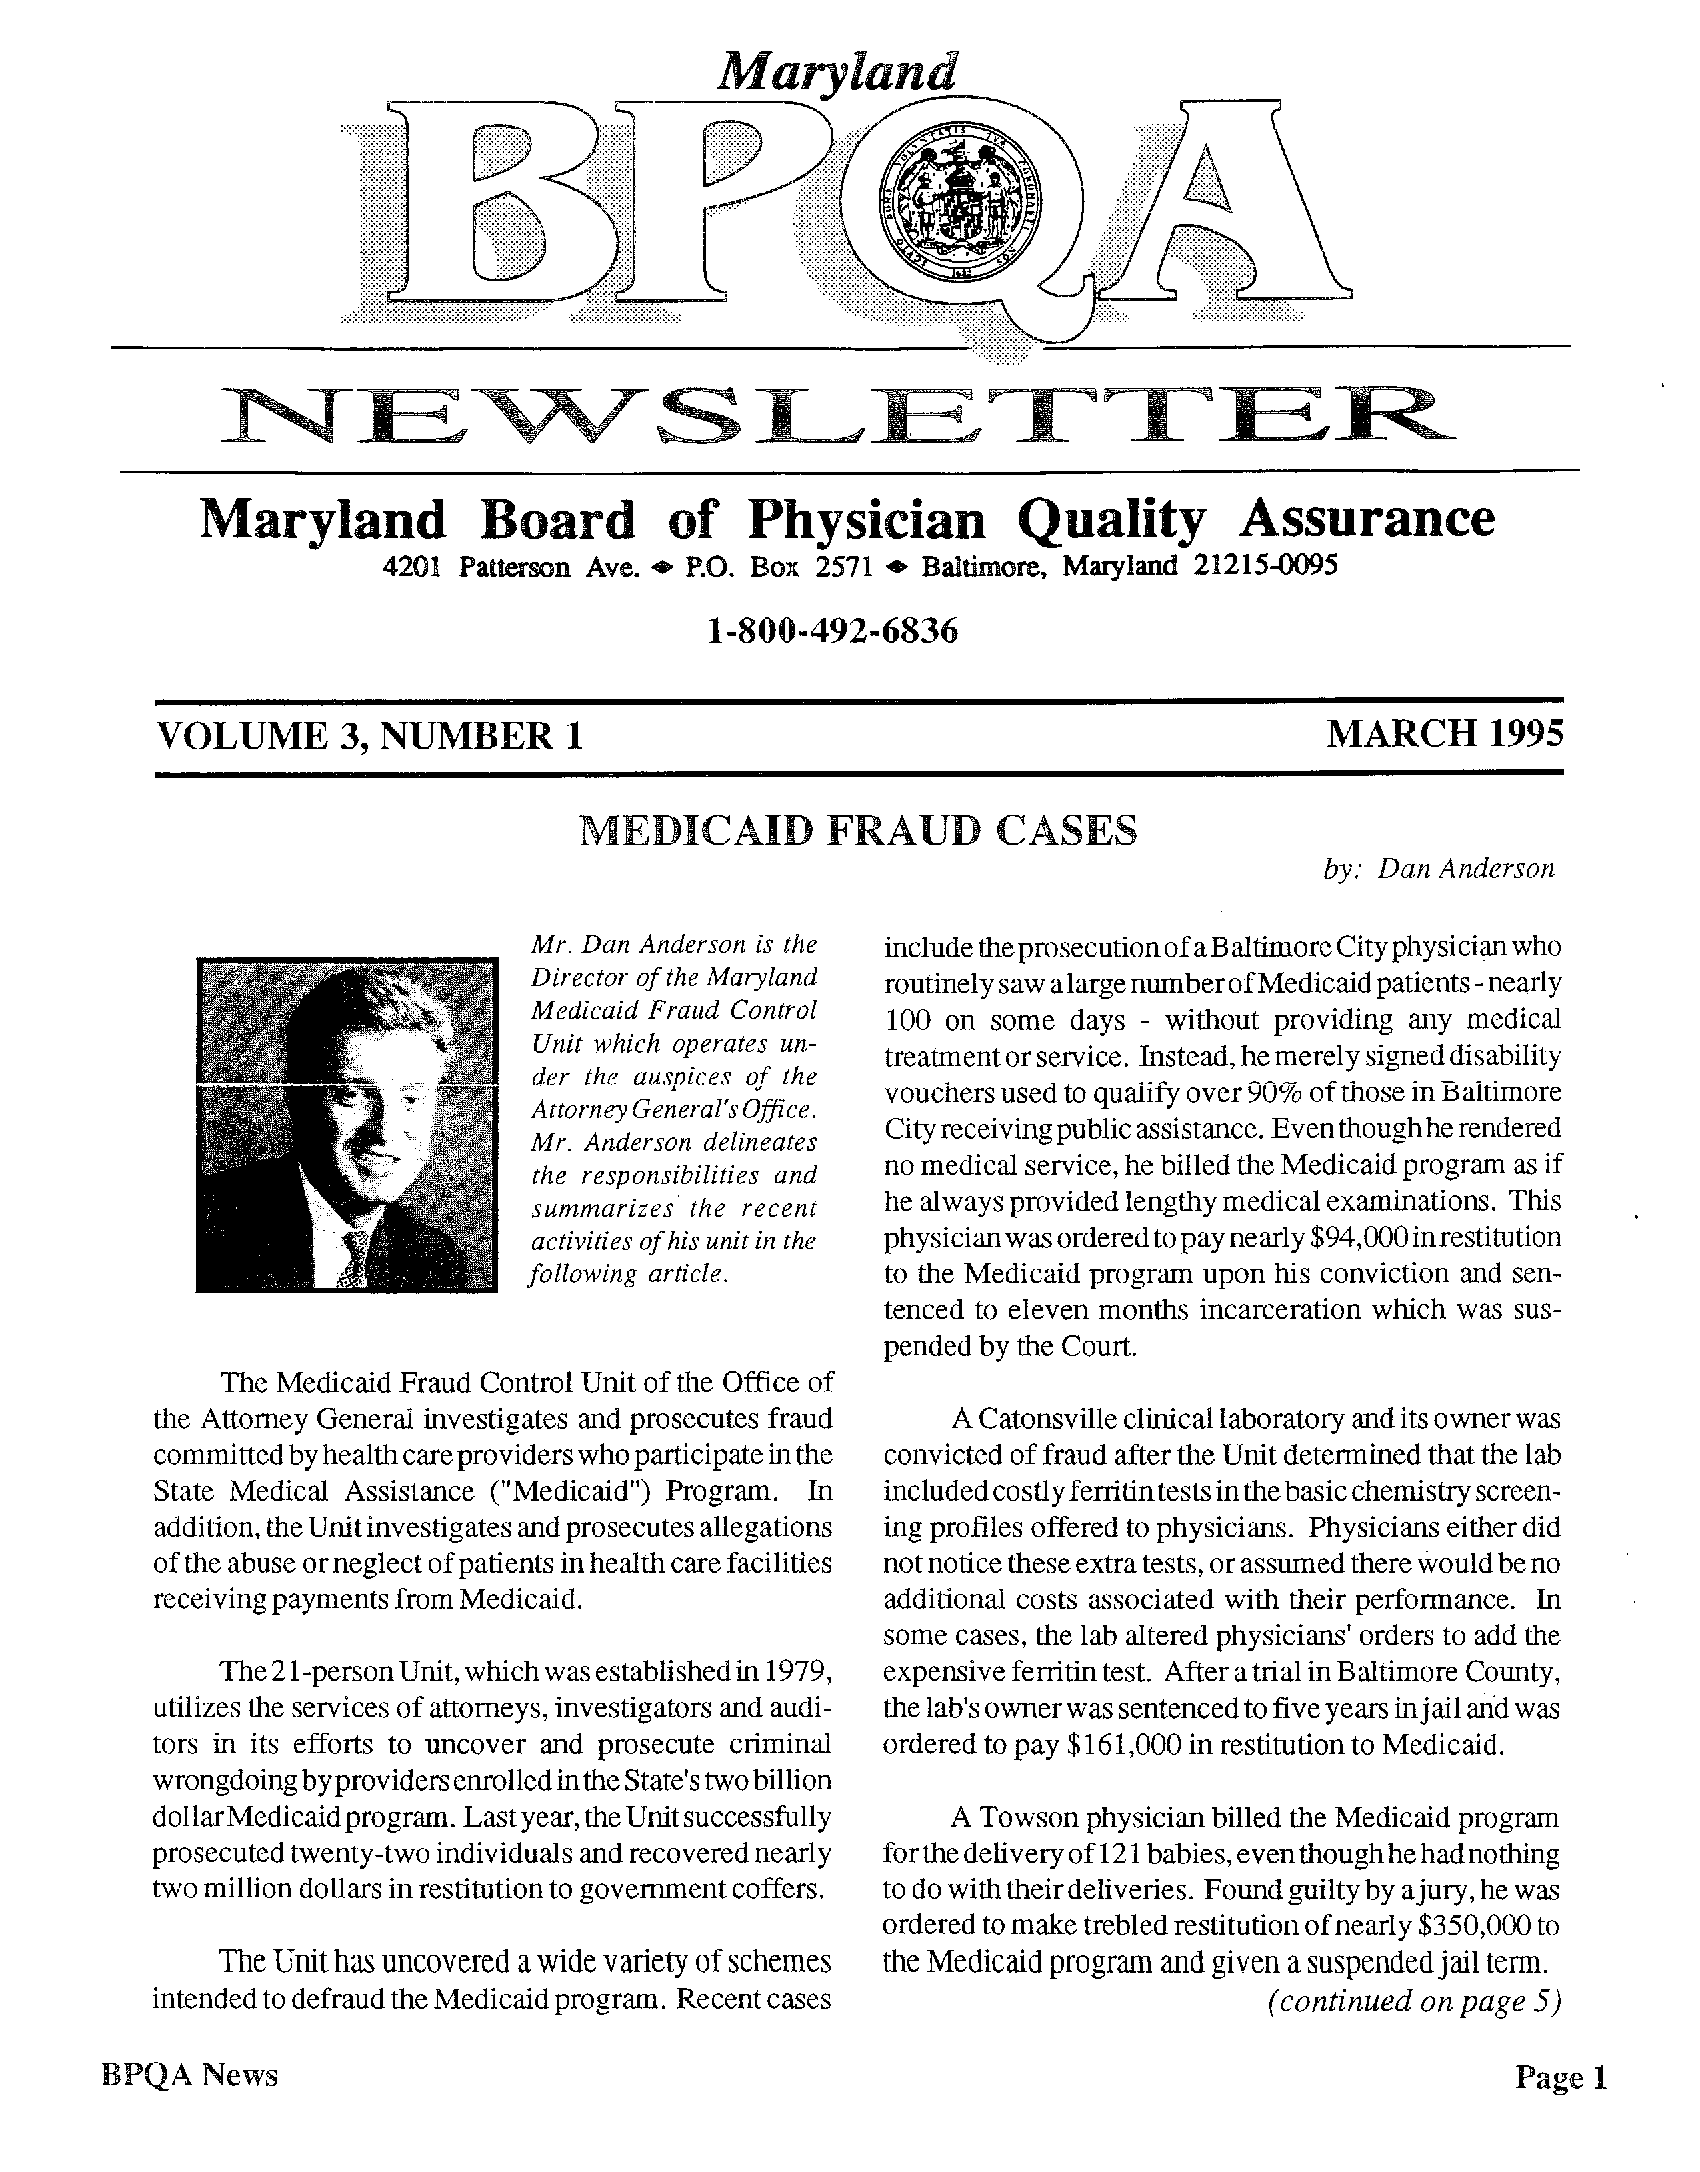 Maryland BPQA Newsletter - Volume 3, Number 1 (March 1995) - State